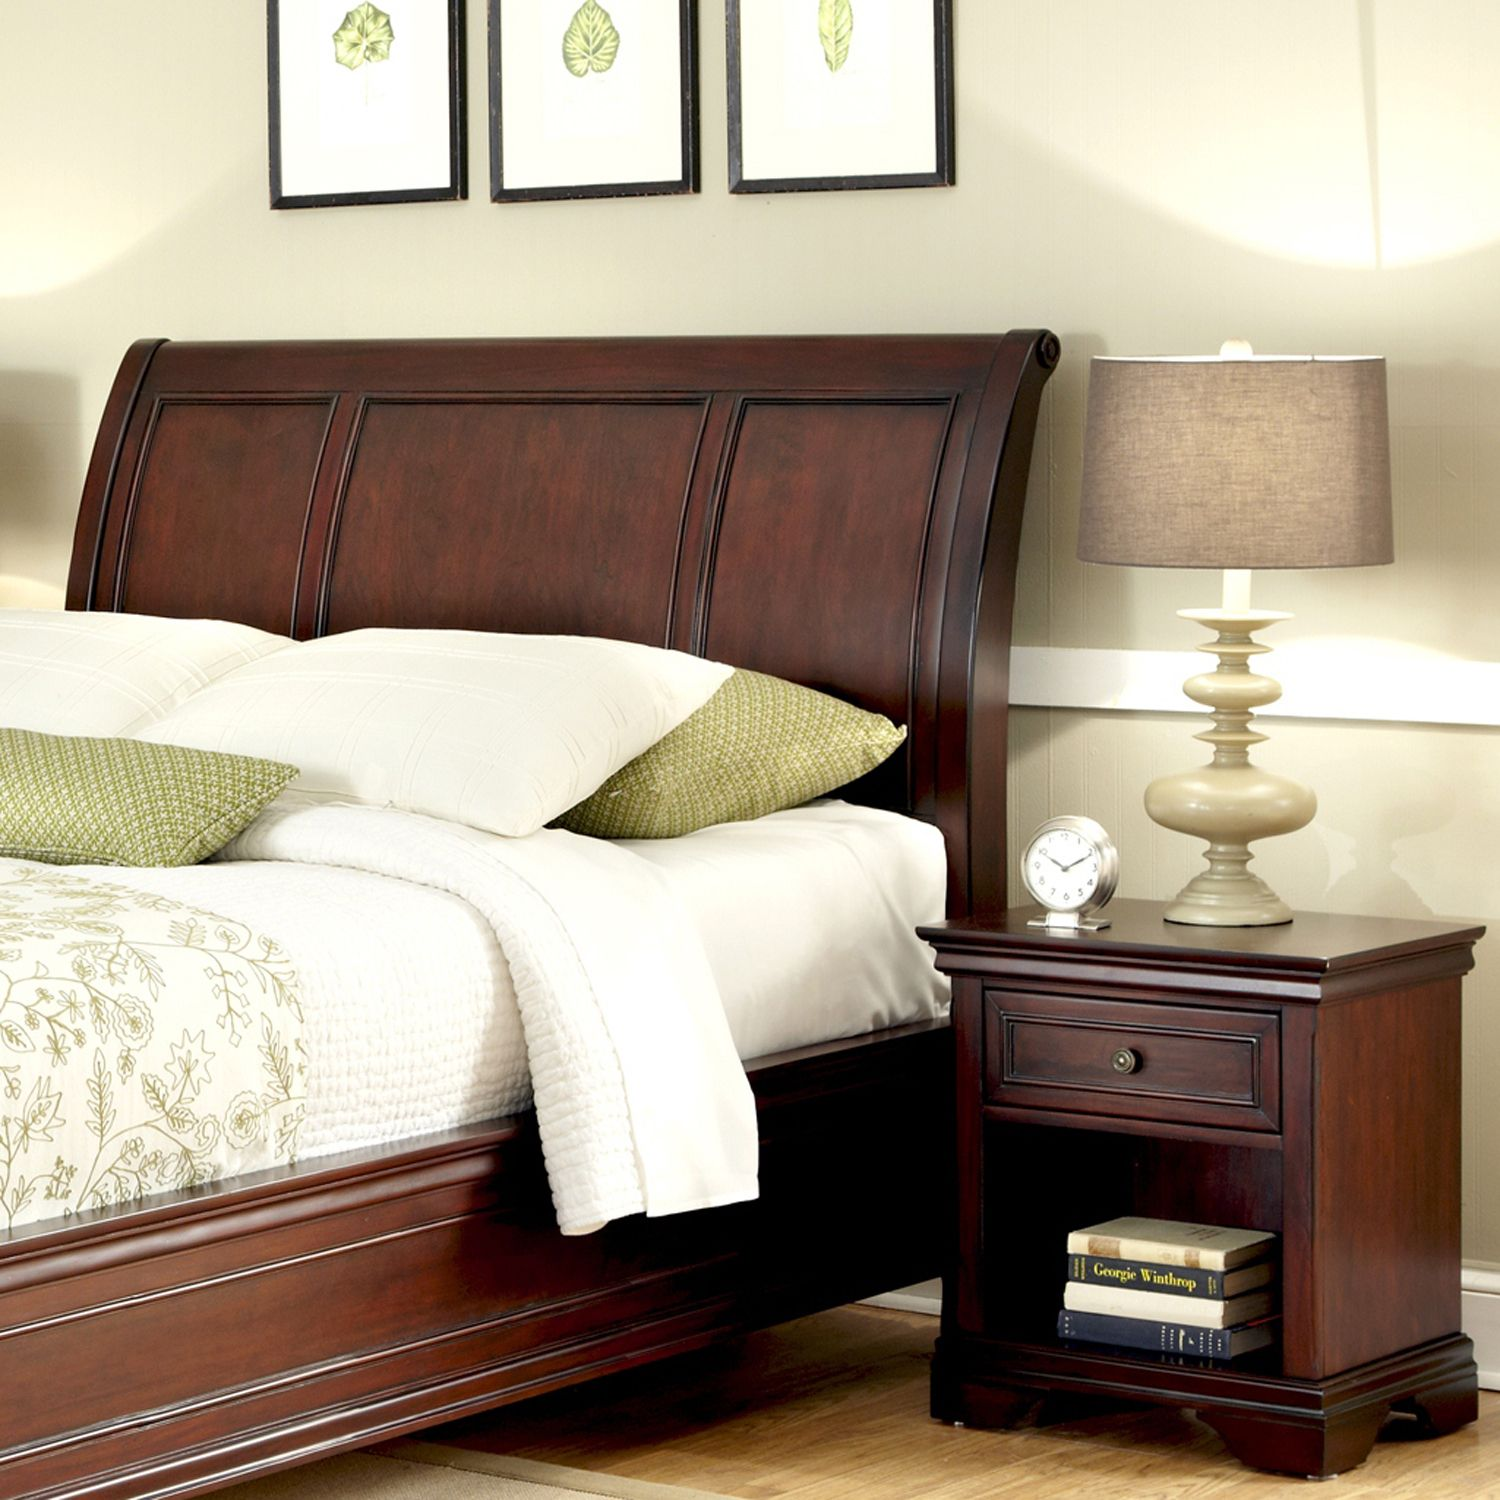 Best Lafayette pc King Headboard u Nightstand Set